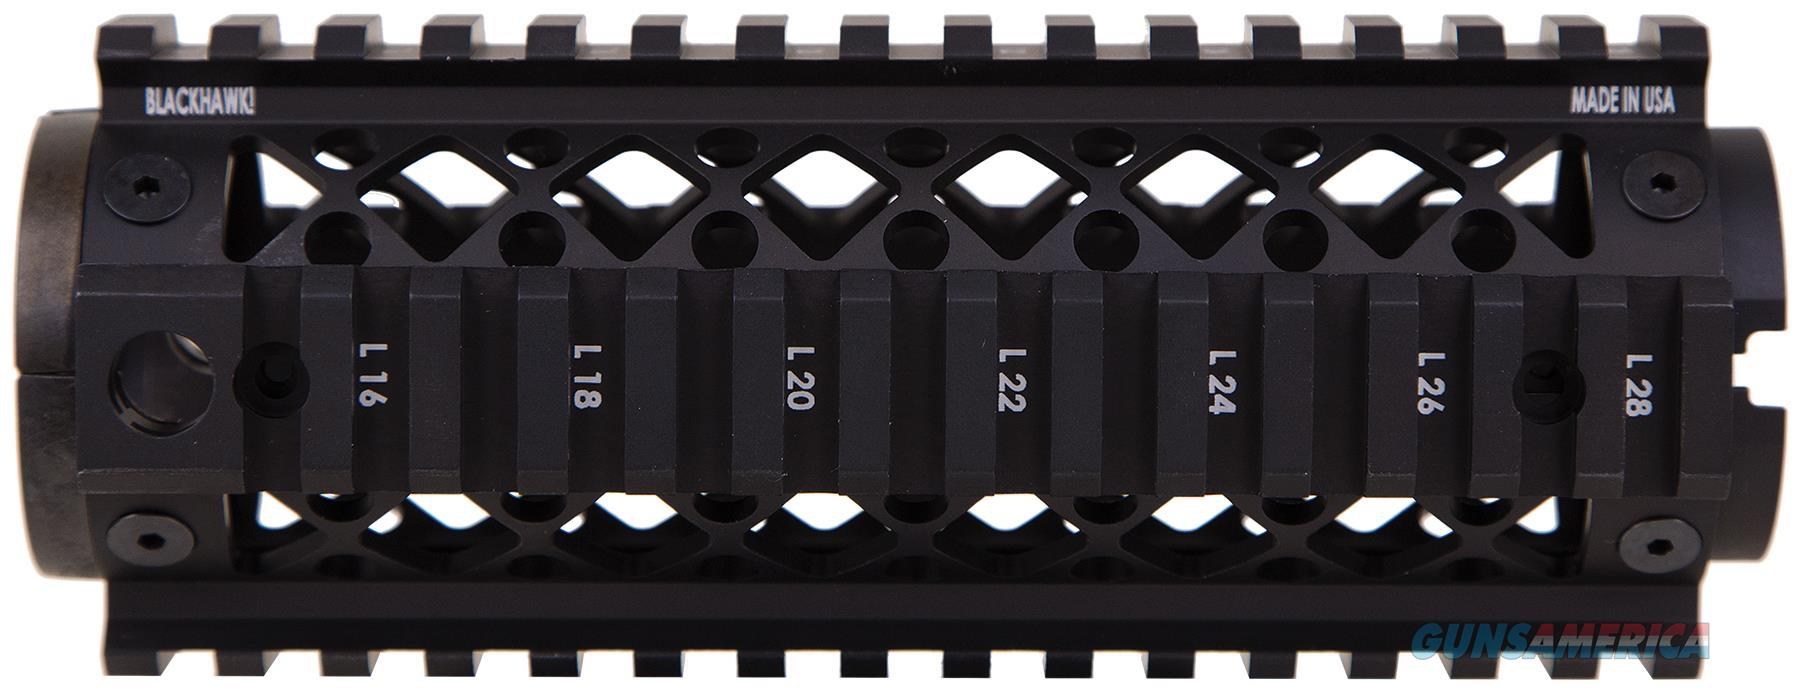 Blackhawk 71Qf01bk 2-Piece Ar Quad Rail Aluminum Black 71QF01BK  Non-Guns > Gunstocks, Grips & Wood